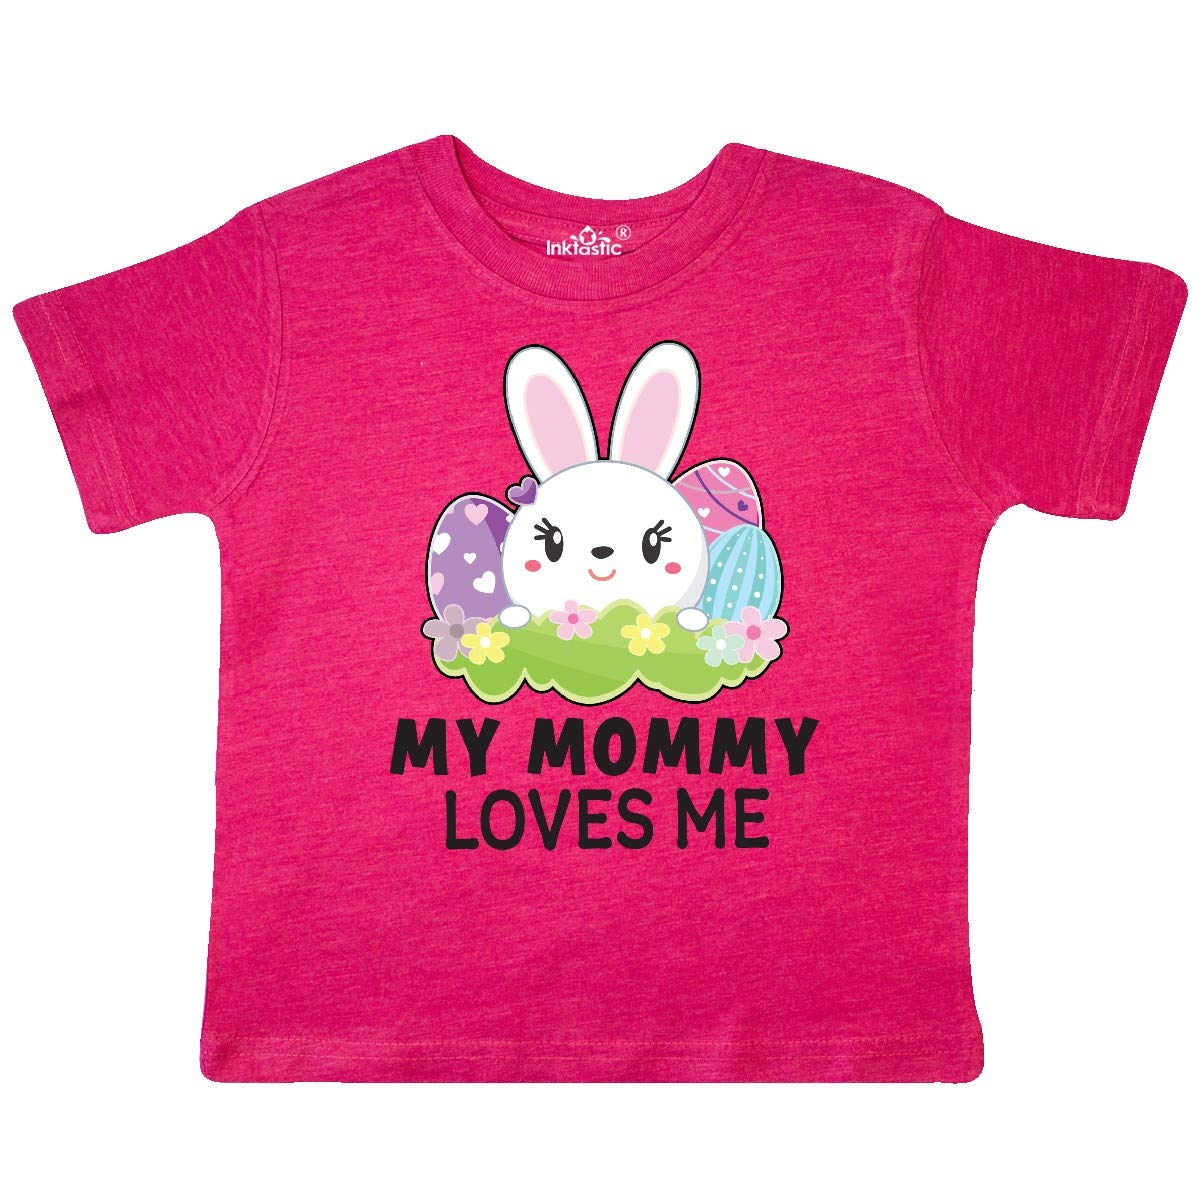 inktastic My Mommy Loves Me with Bunny and Easter Eggs Toddler T-Shirt